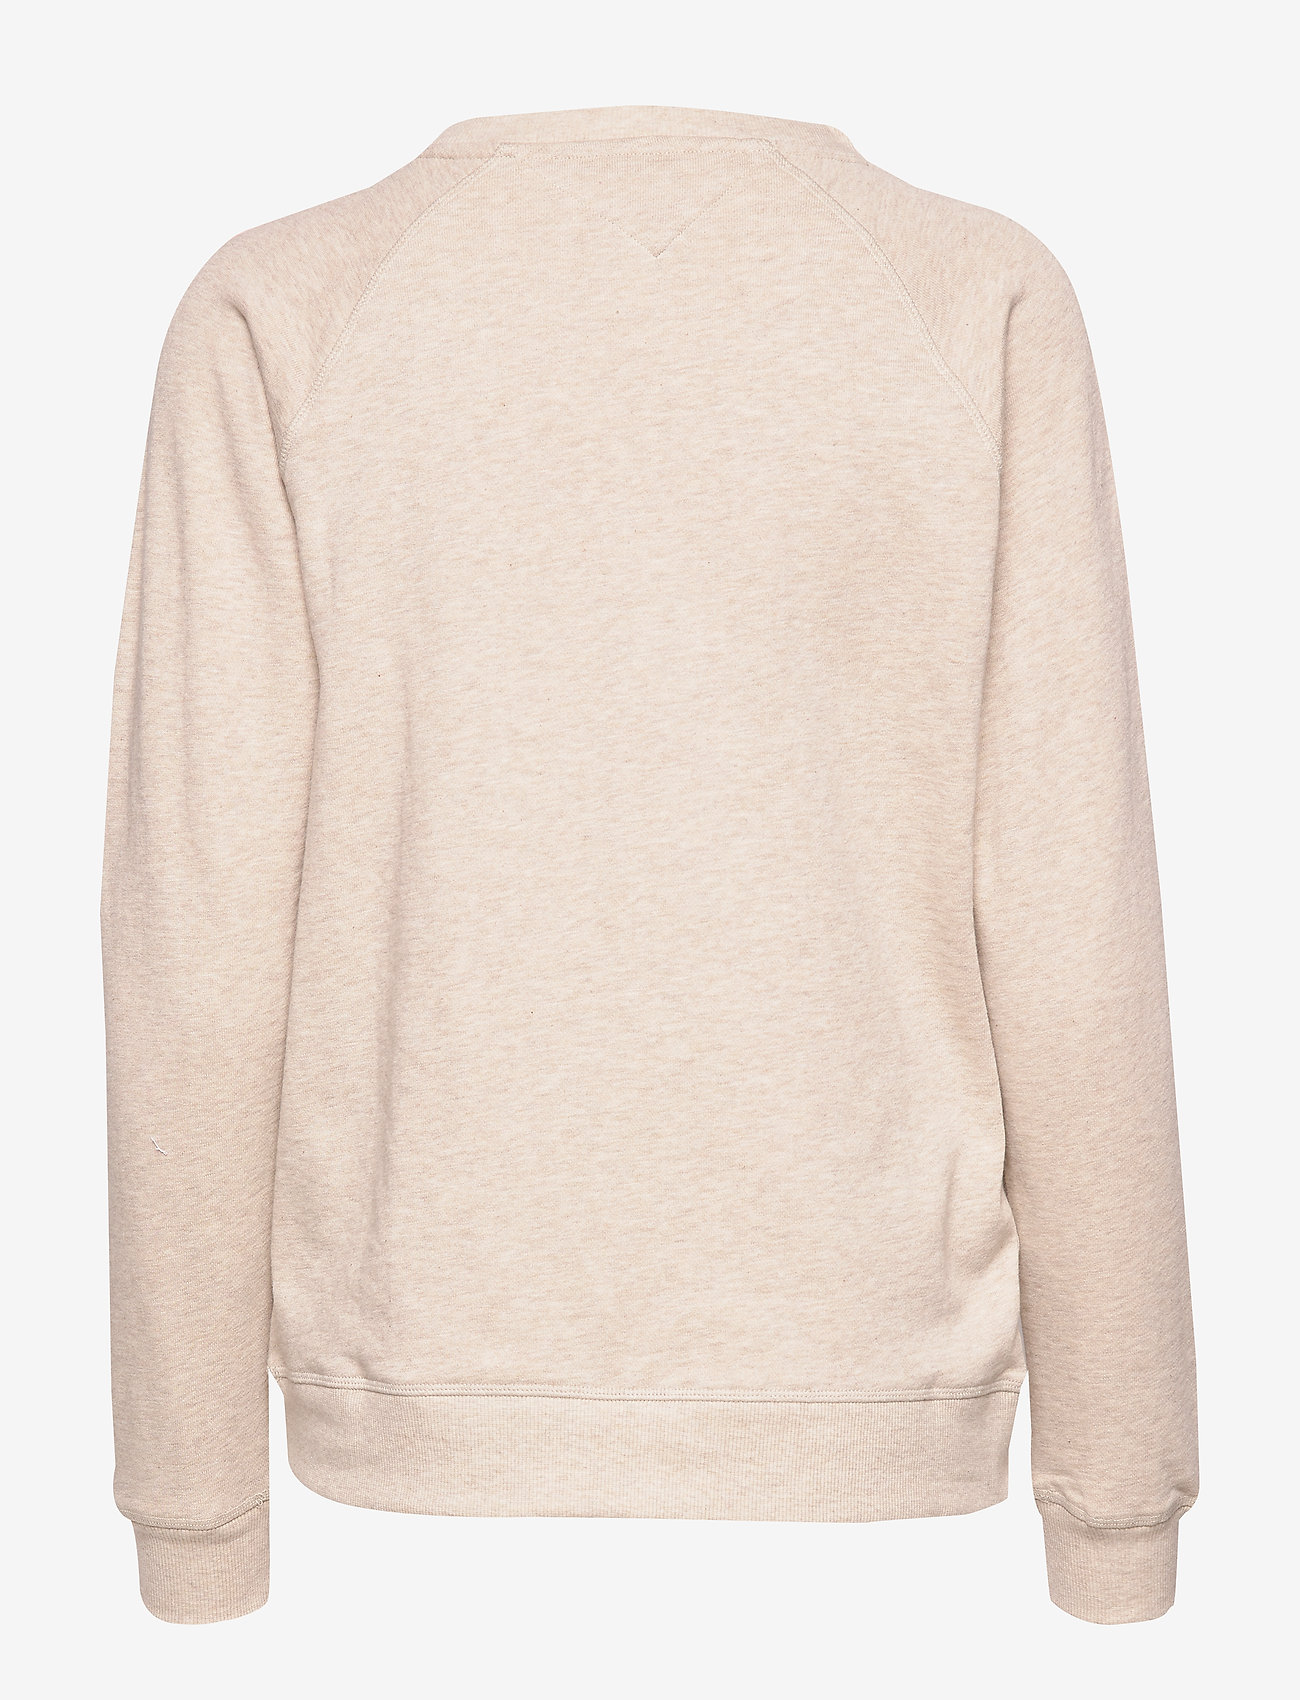 Tommy Hilfiger - CN TRACK TOP LS - oatmeal heather - 1